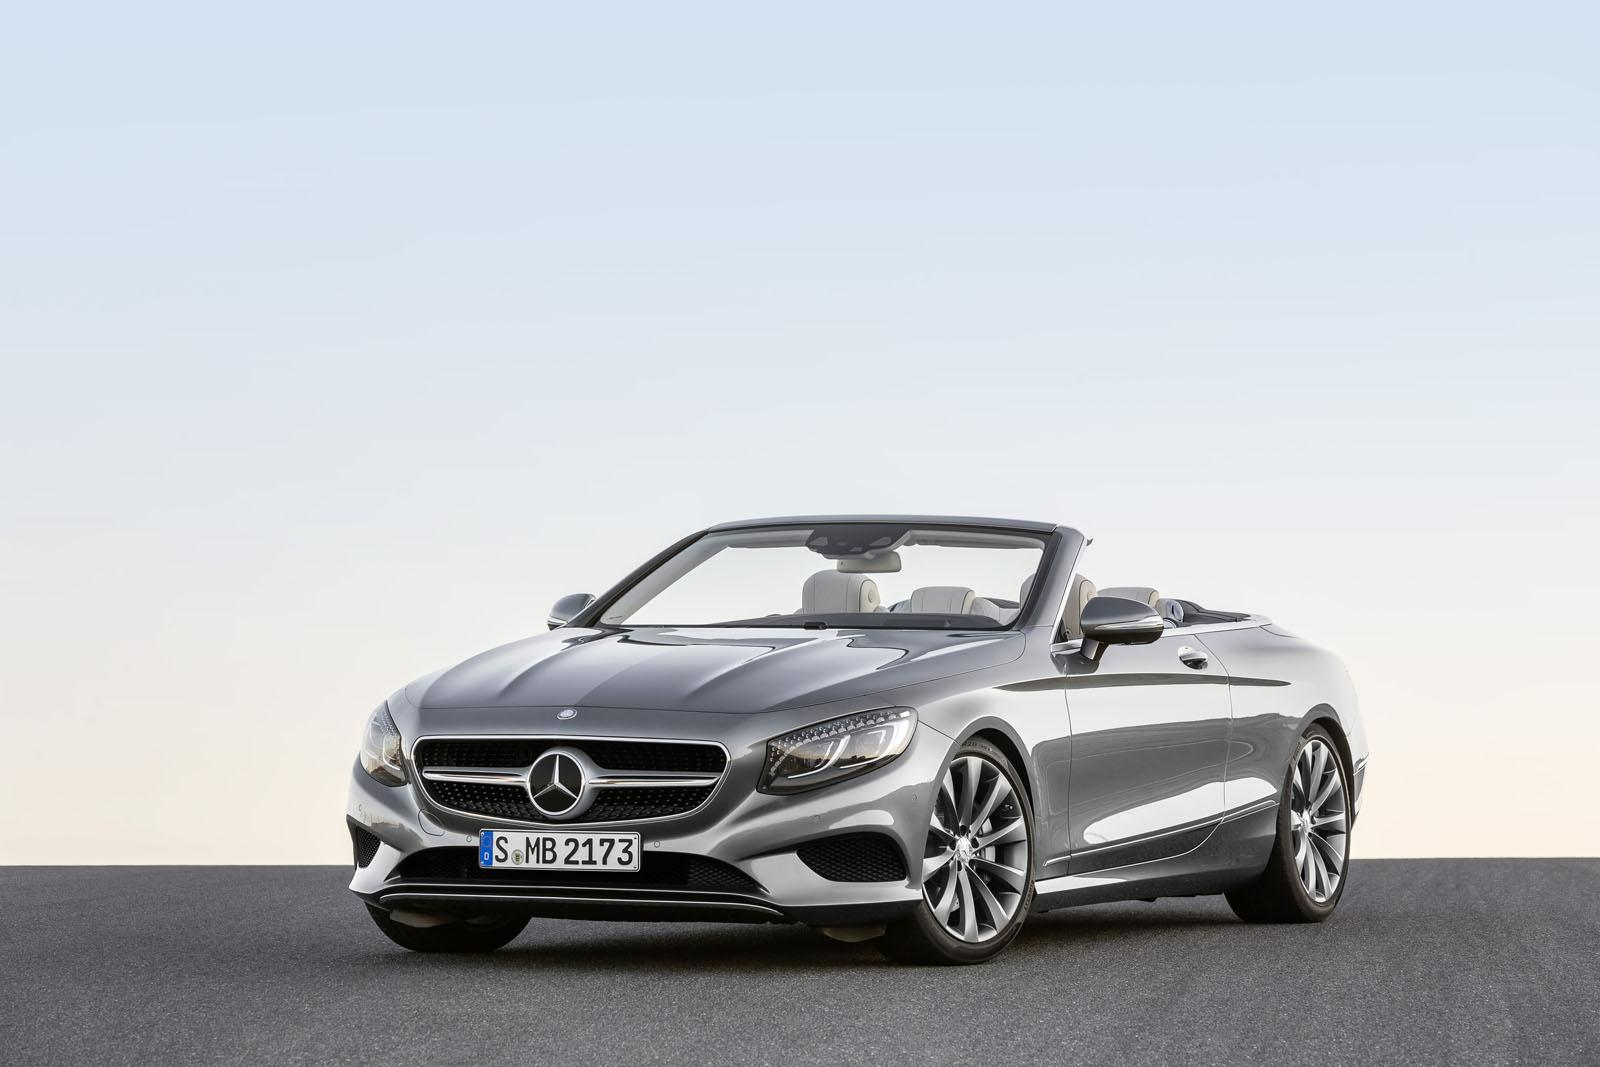 2016 Mercedes S Class Cabriolet front three quarter unveiled